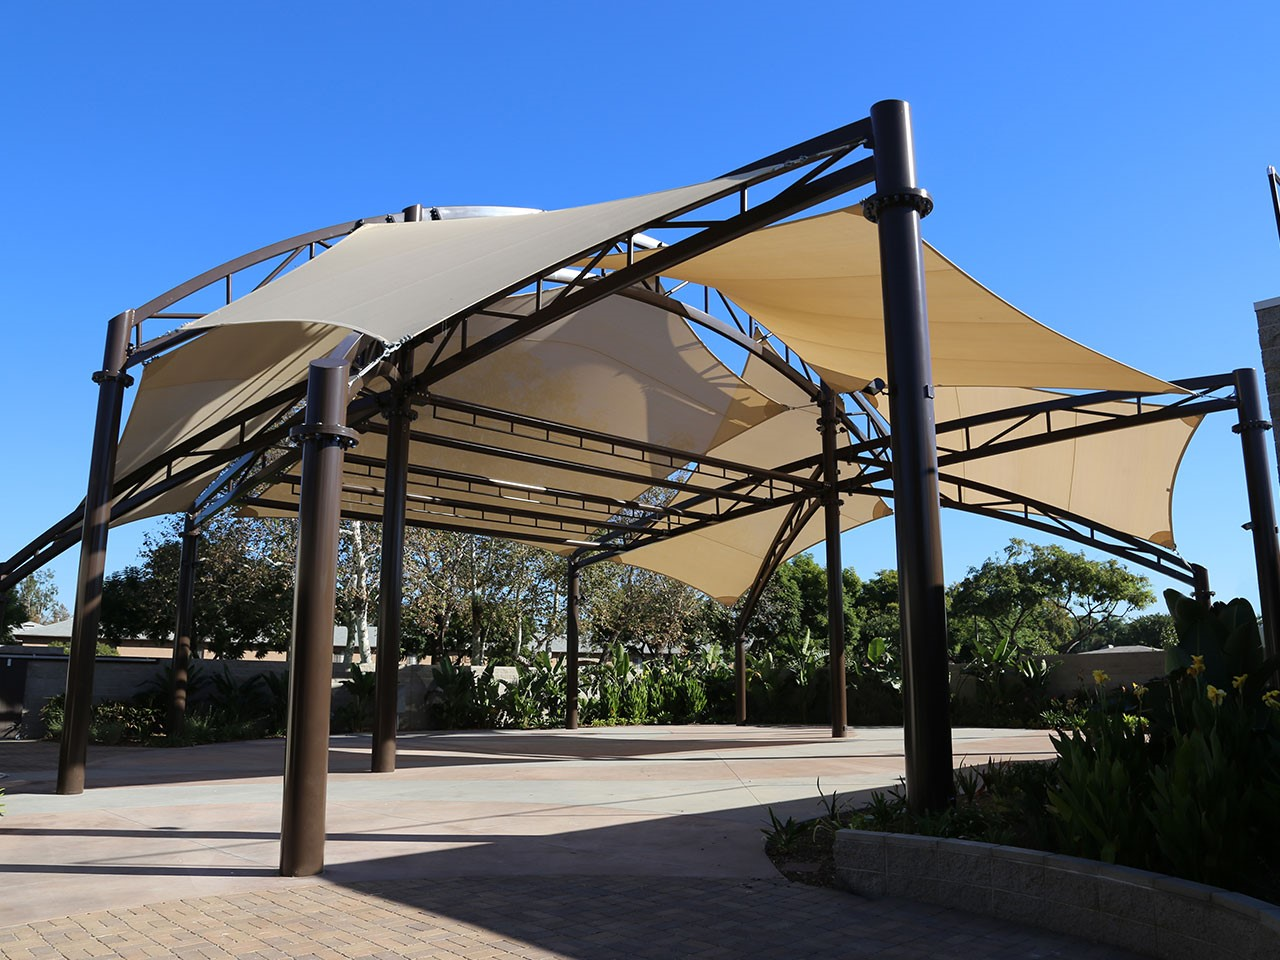 The Plaza At Ehlers Event Center Shade Structure